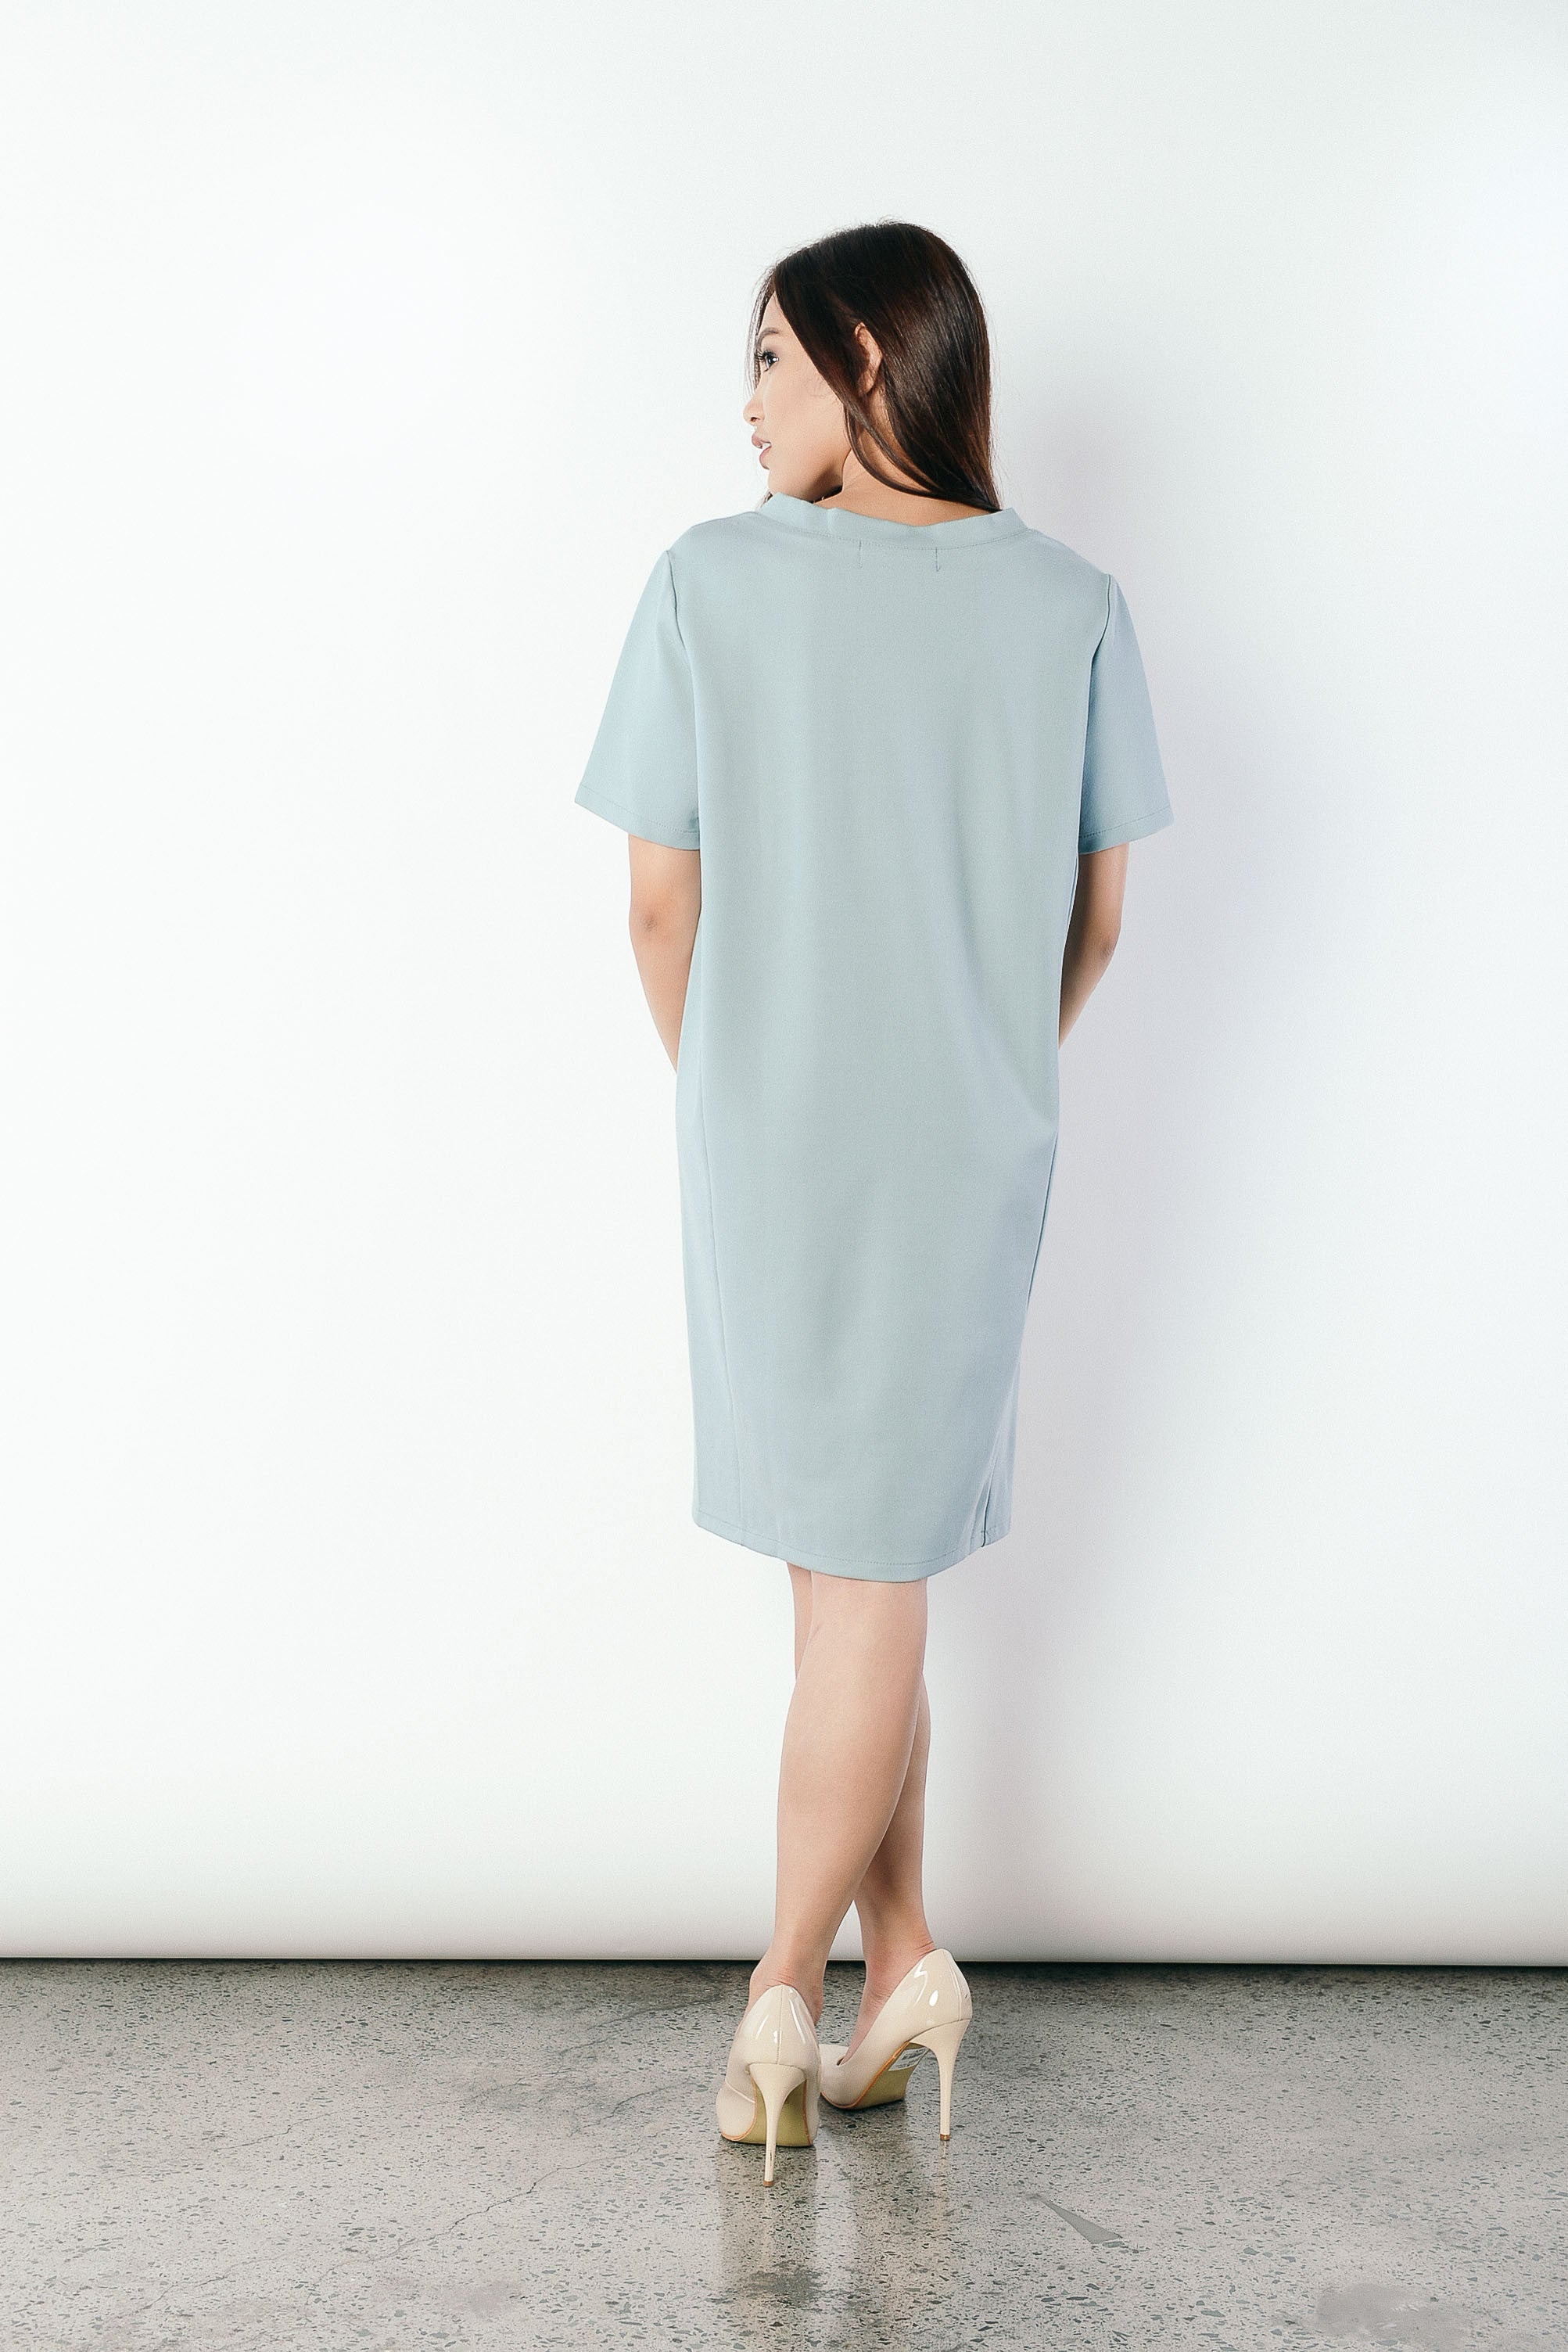 Franca V-neck T-shirt Dress in Green